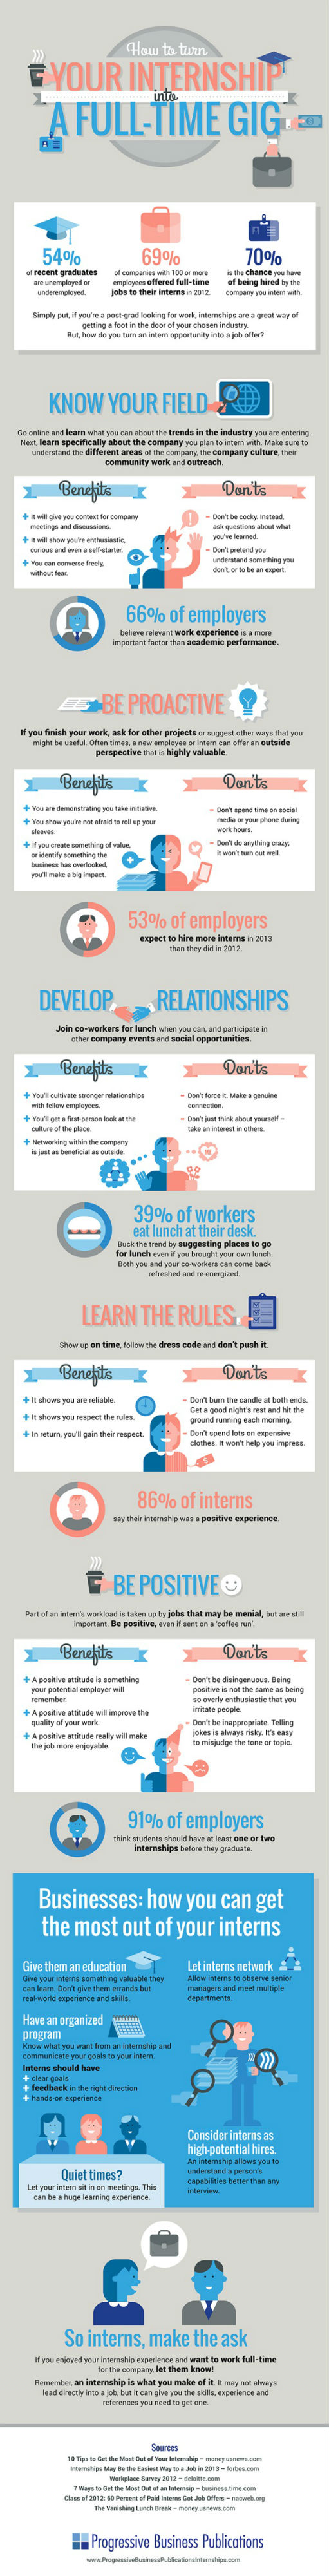 How to Turn Your Internship Into A Full-Time Gig [Infographic]